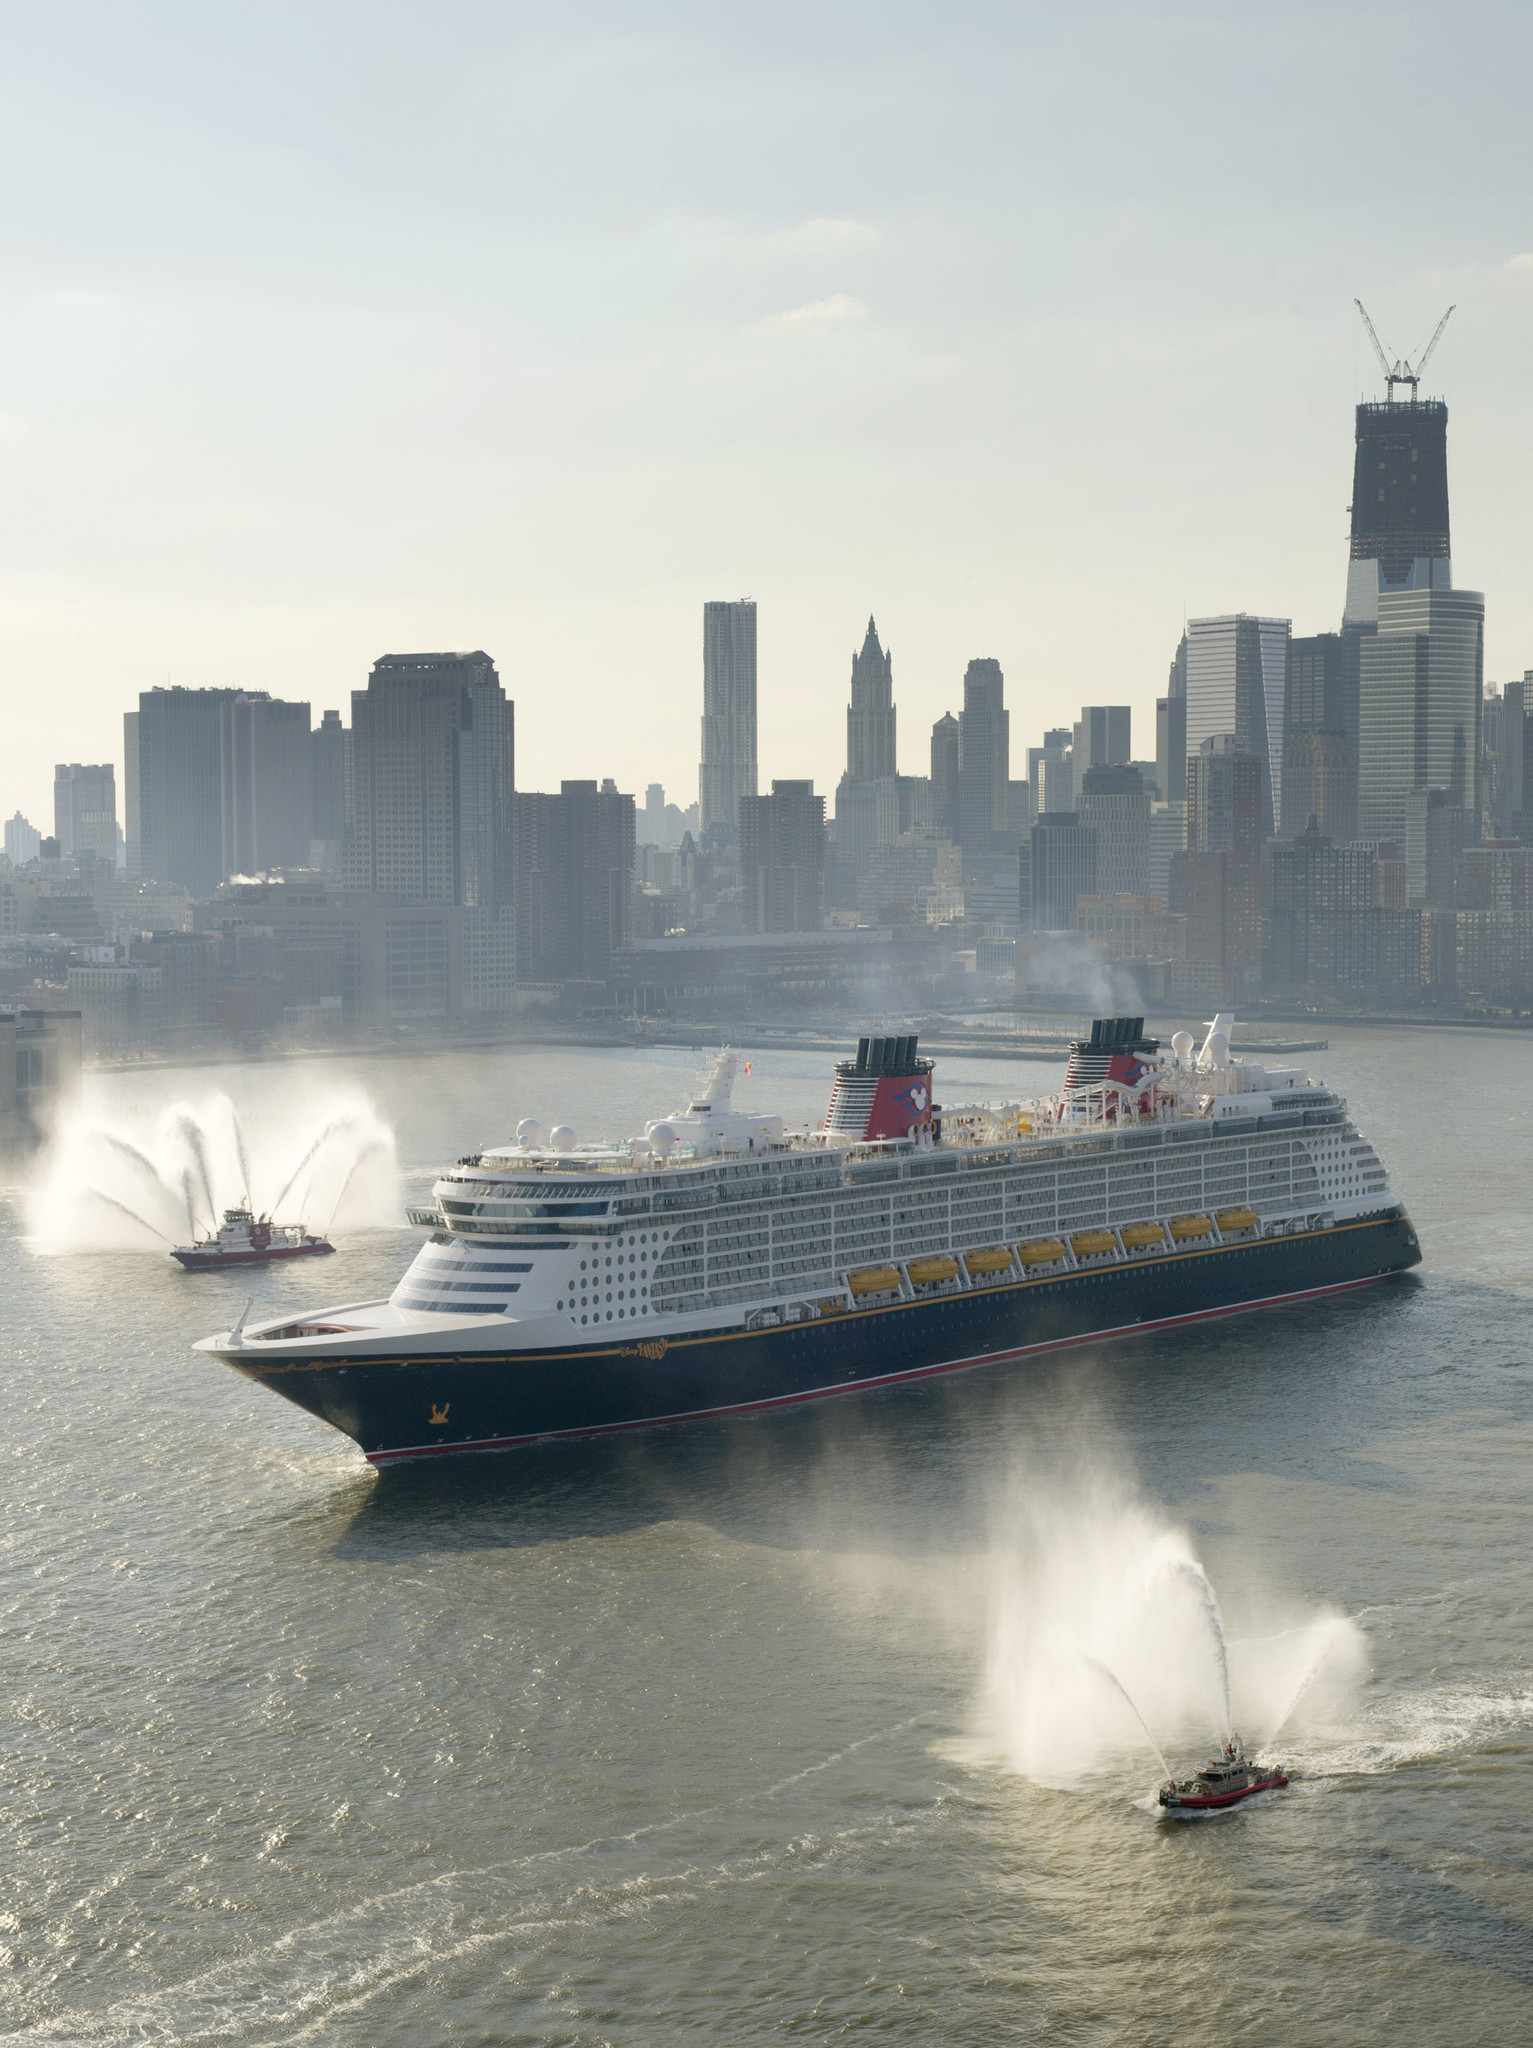 Florida Cruise Guide: Disney Fantasy pictures - Disney Fantasy arrives in New York